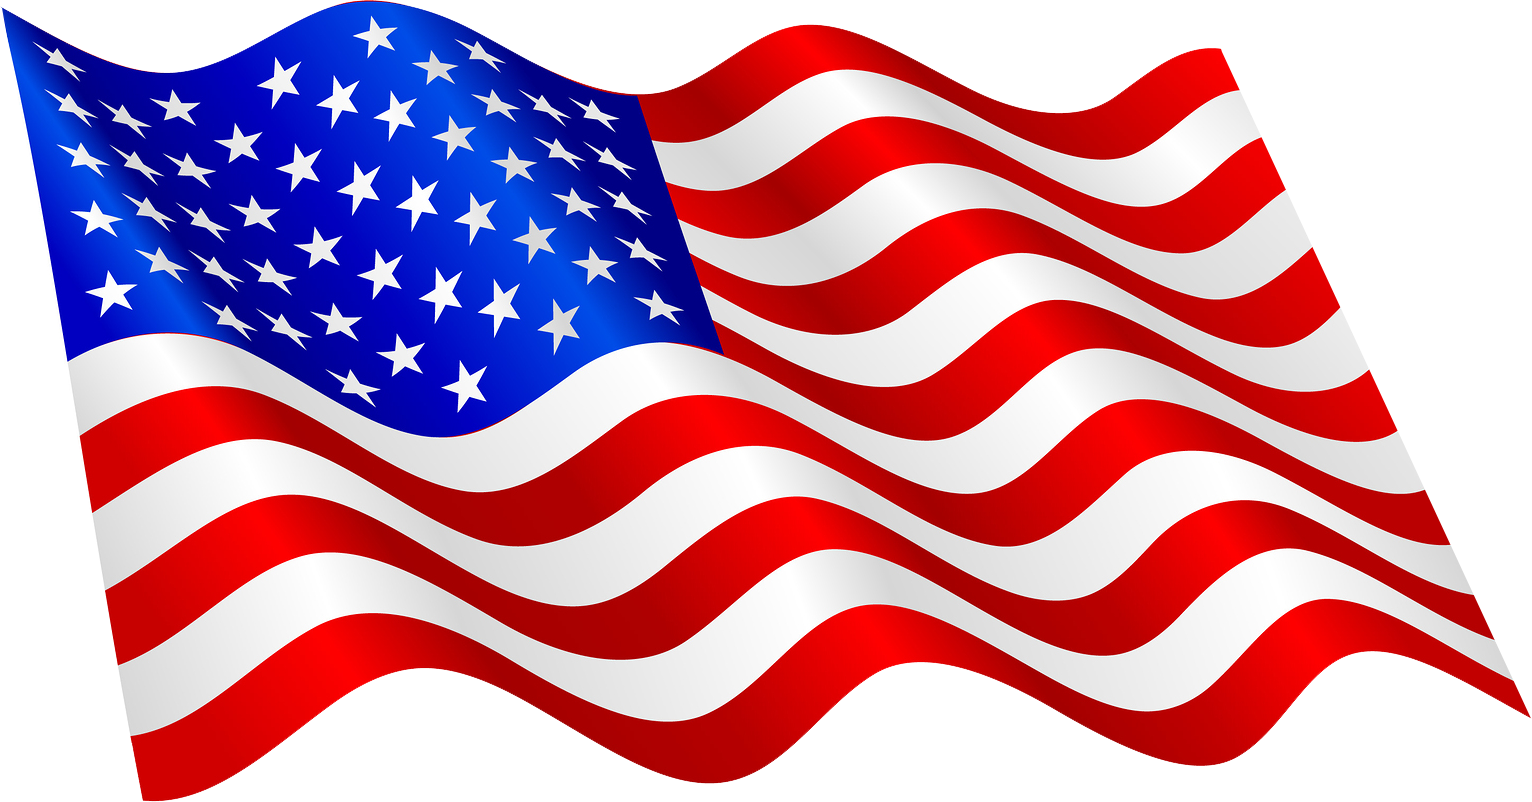 United States of America Flag PNG Transparent Images PNG